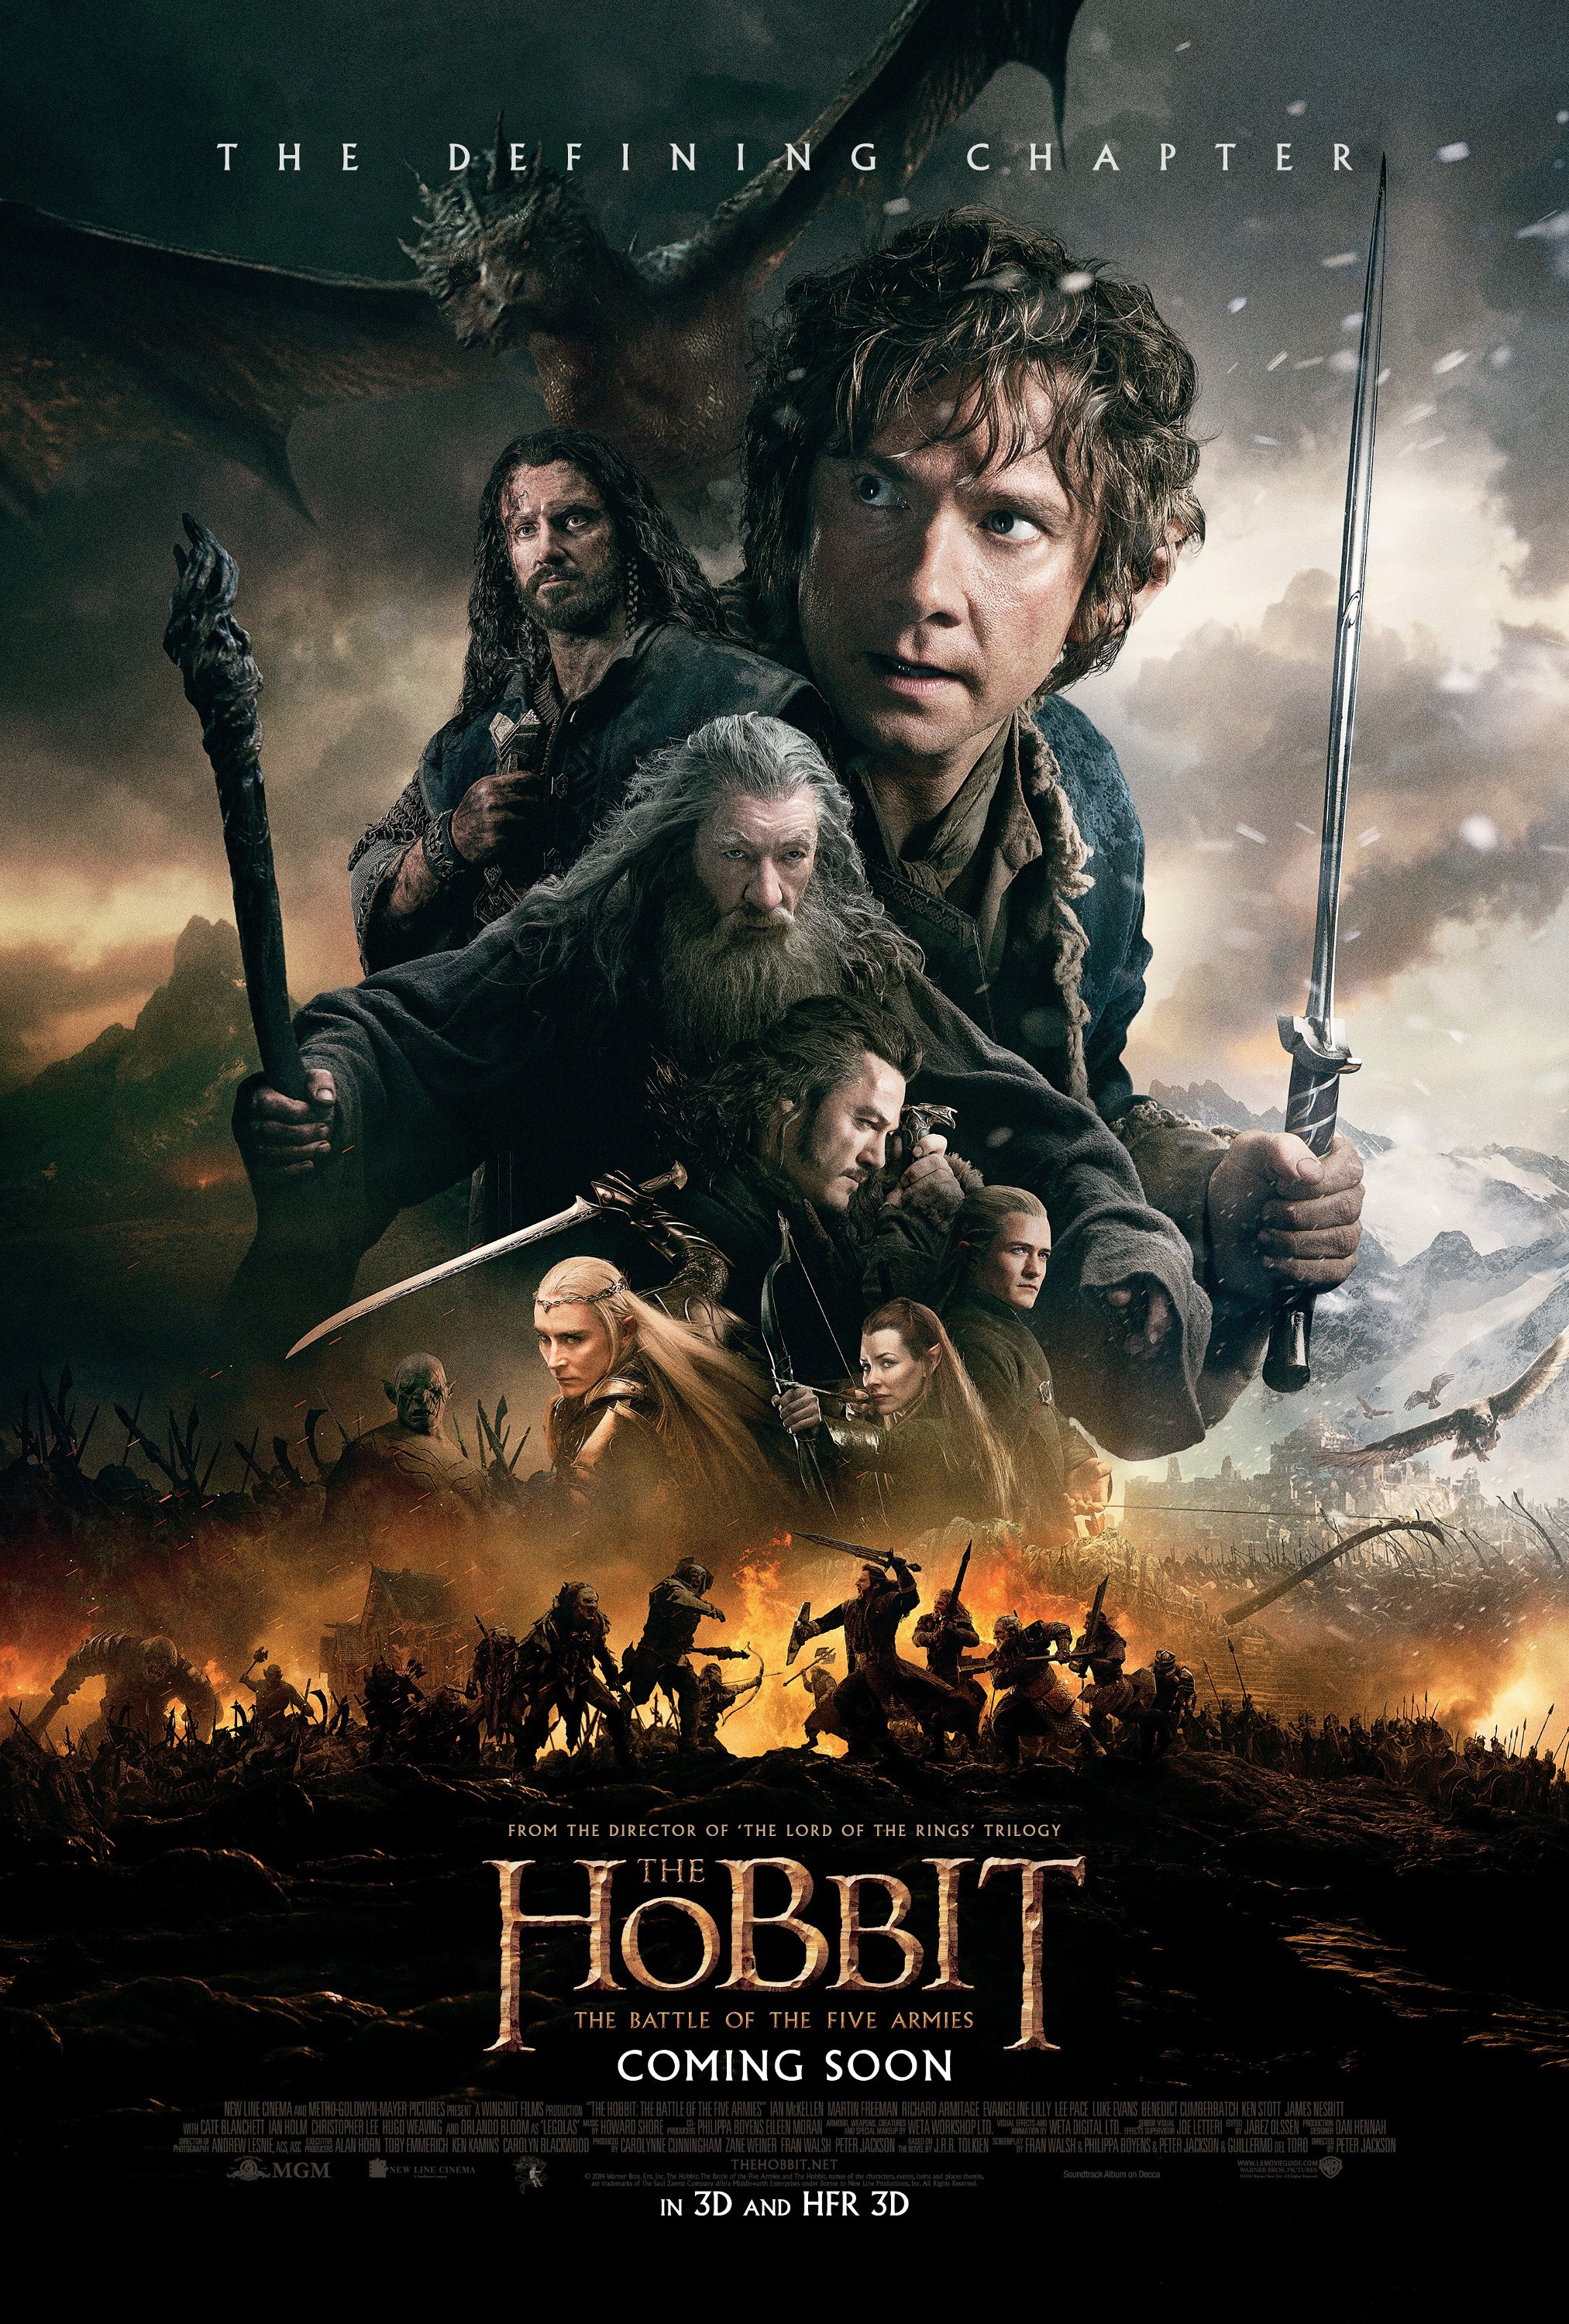 """""""The Hobbit - The Battle of the Five Armies"""" theatrical teaser poster."""